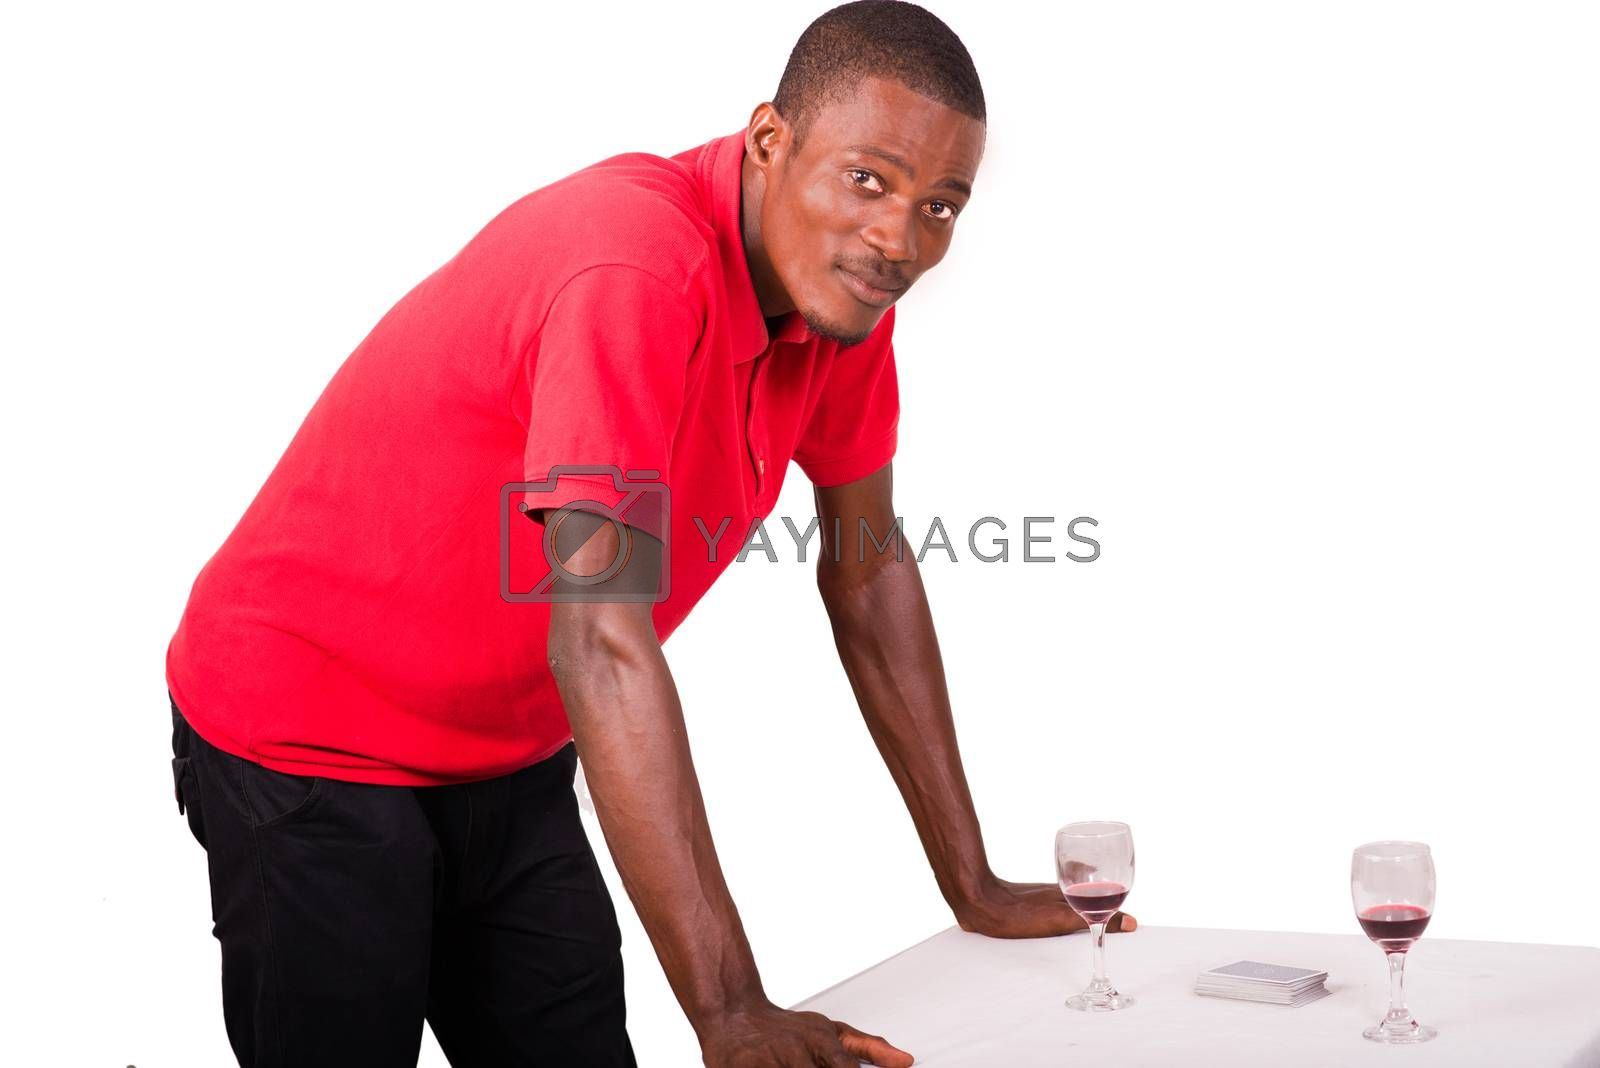 businessman leaning alone against a table with two glasses of wine in front of him and playing cards on the table.